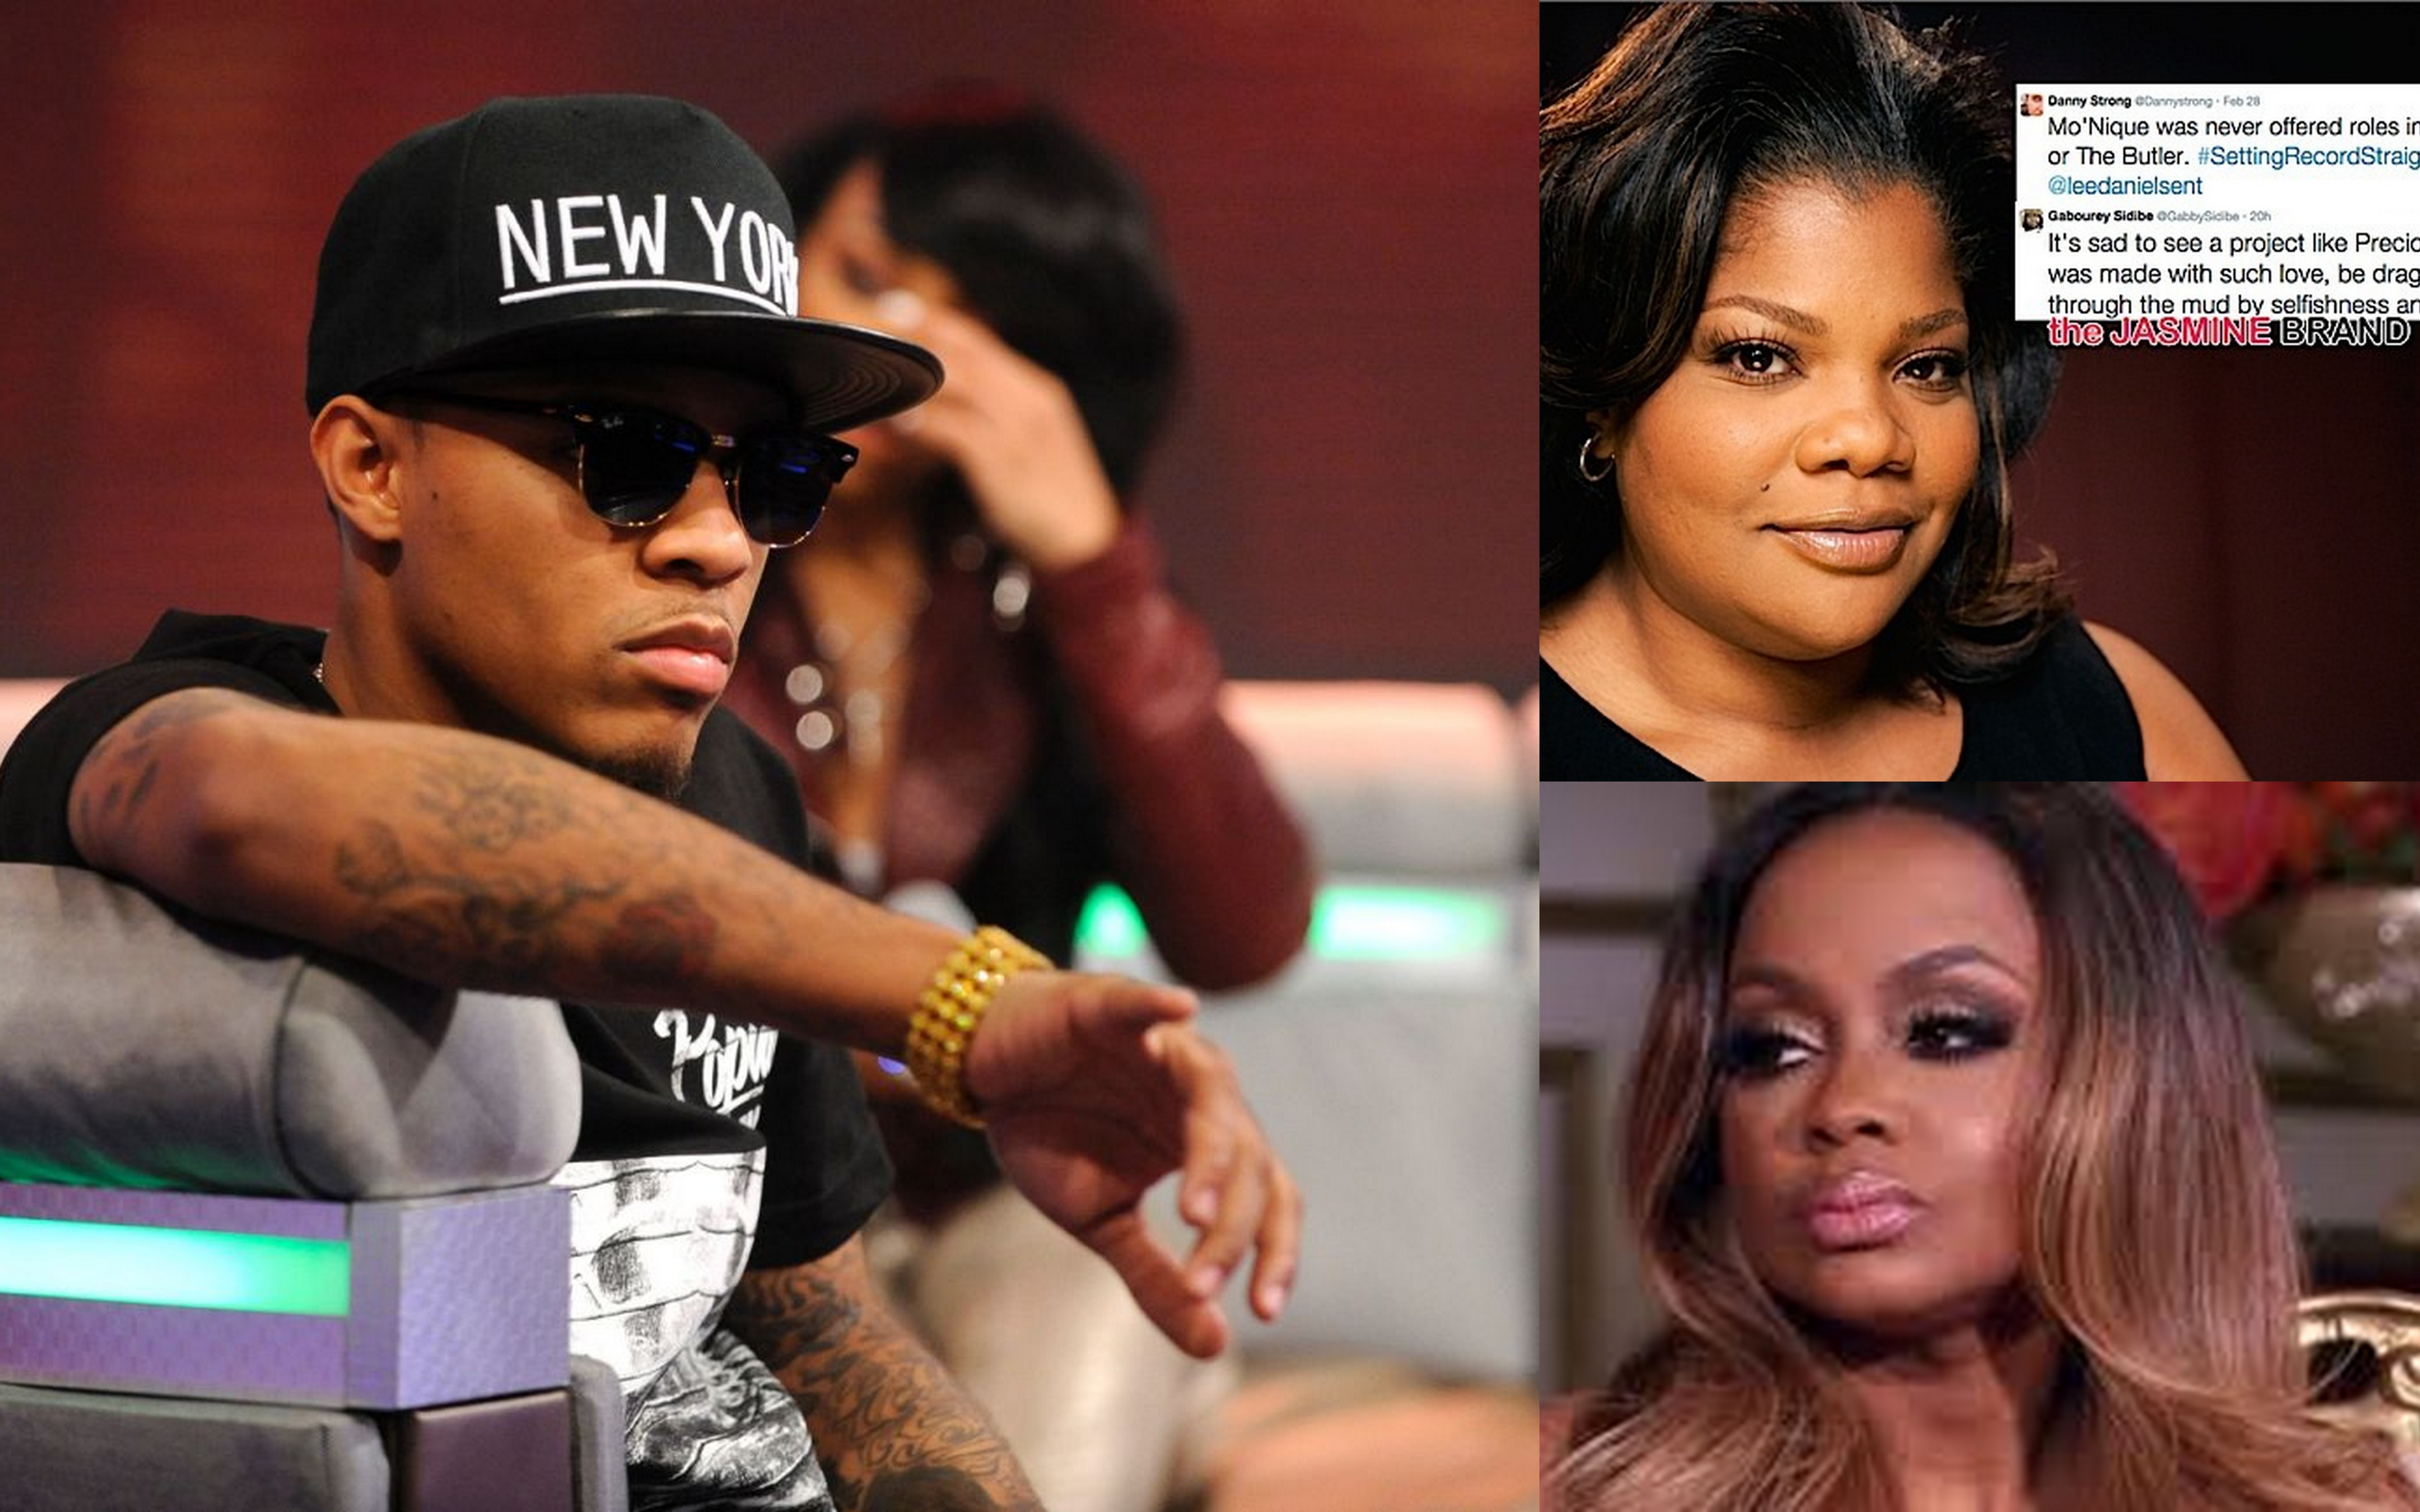 bow wow phaedra parks and monique needing hugs or attention 2017